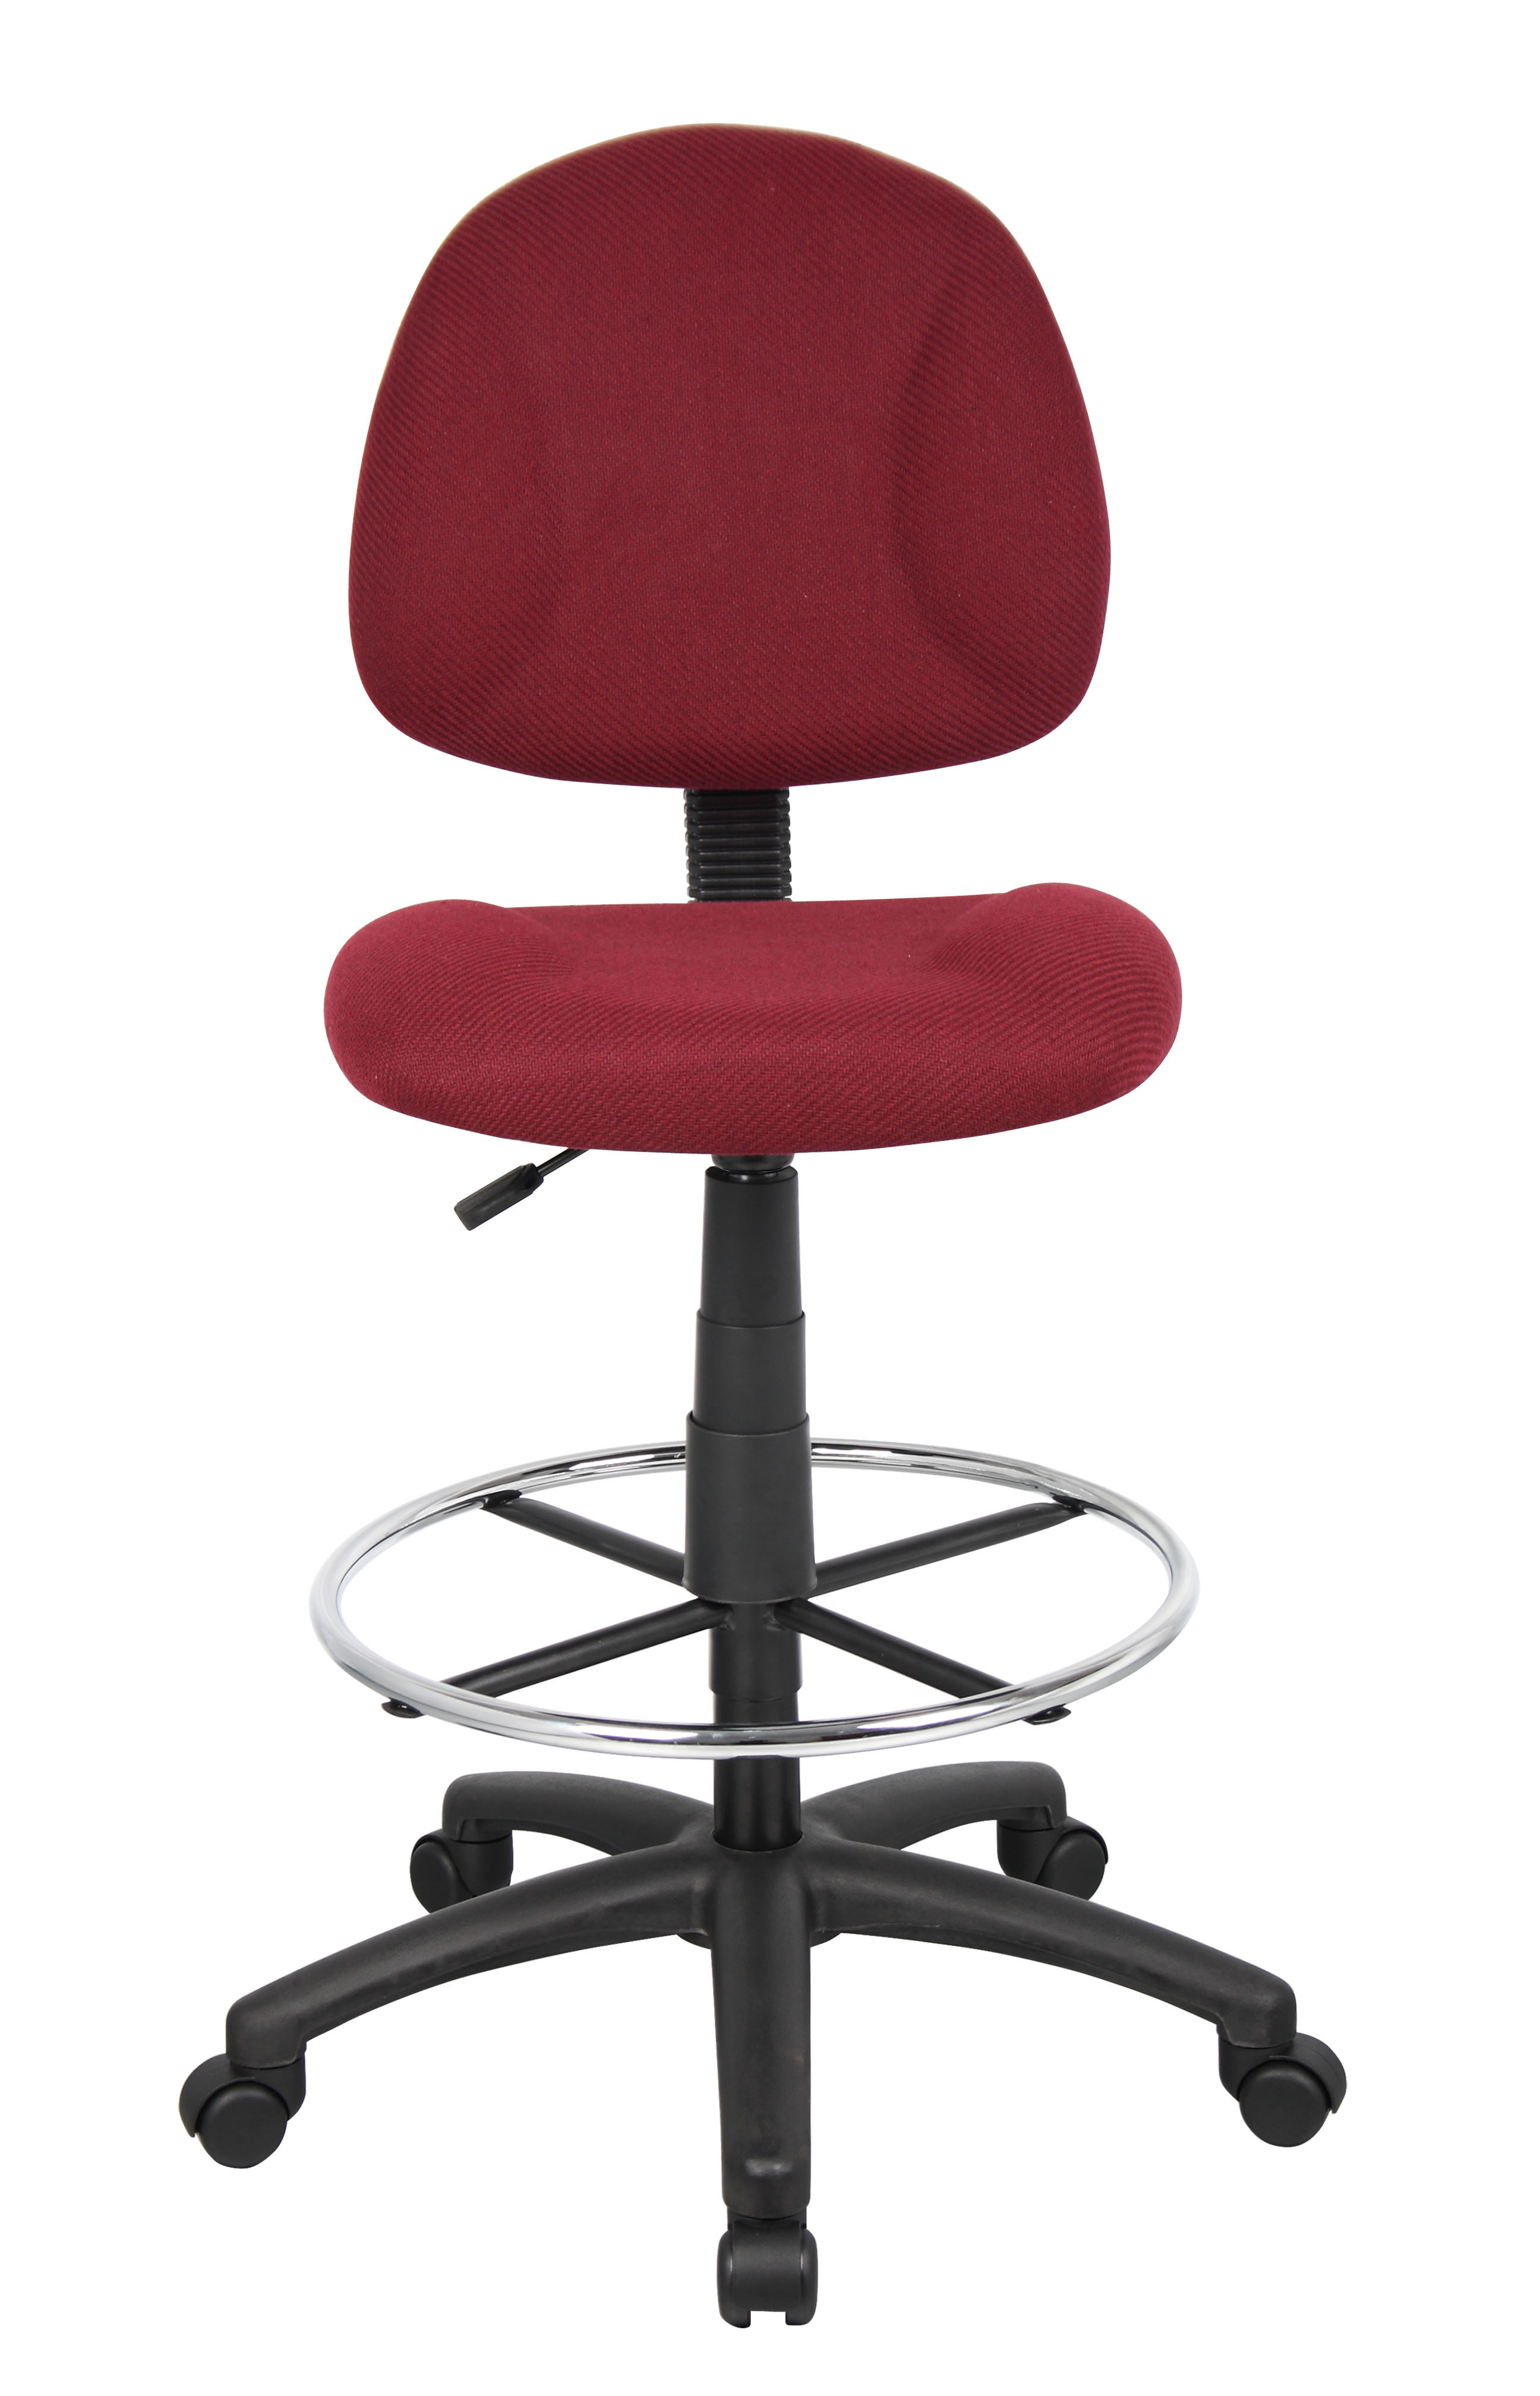 Drafting Stool Without Arms Chairs Amp Seating